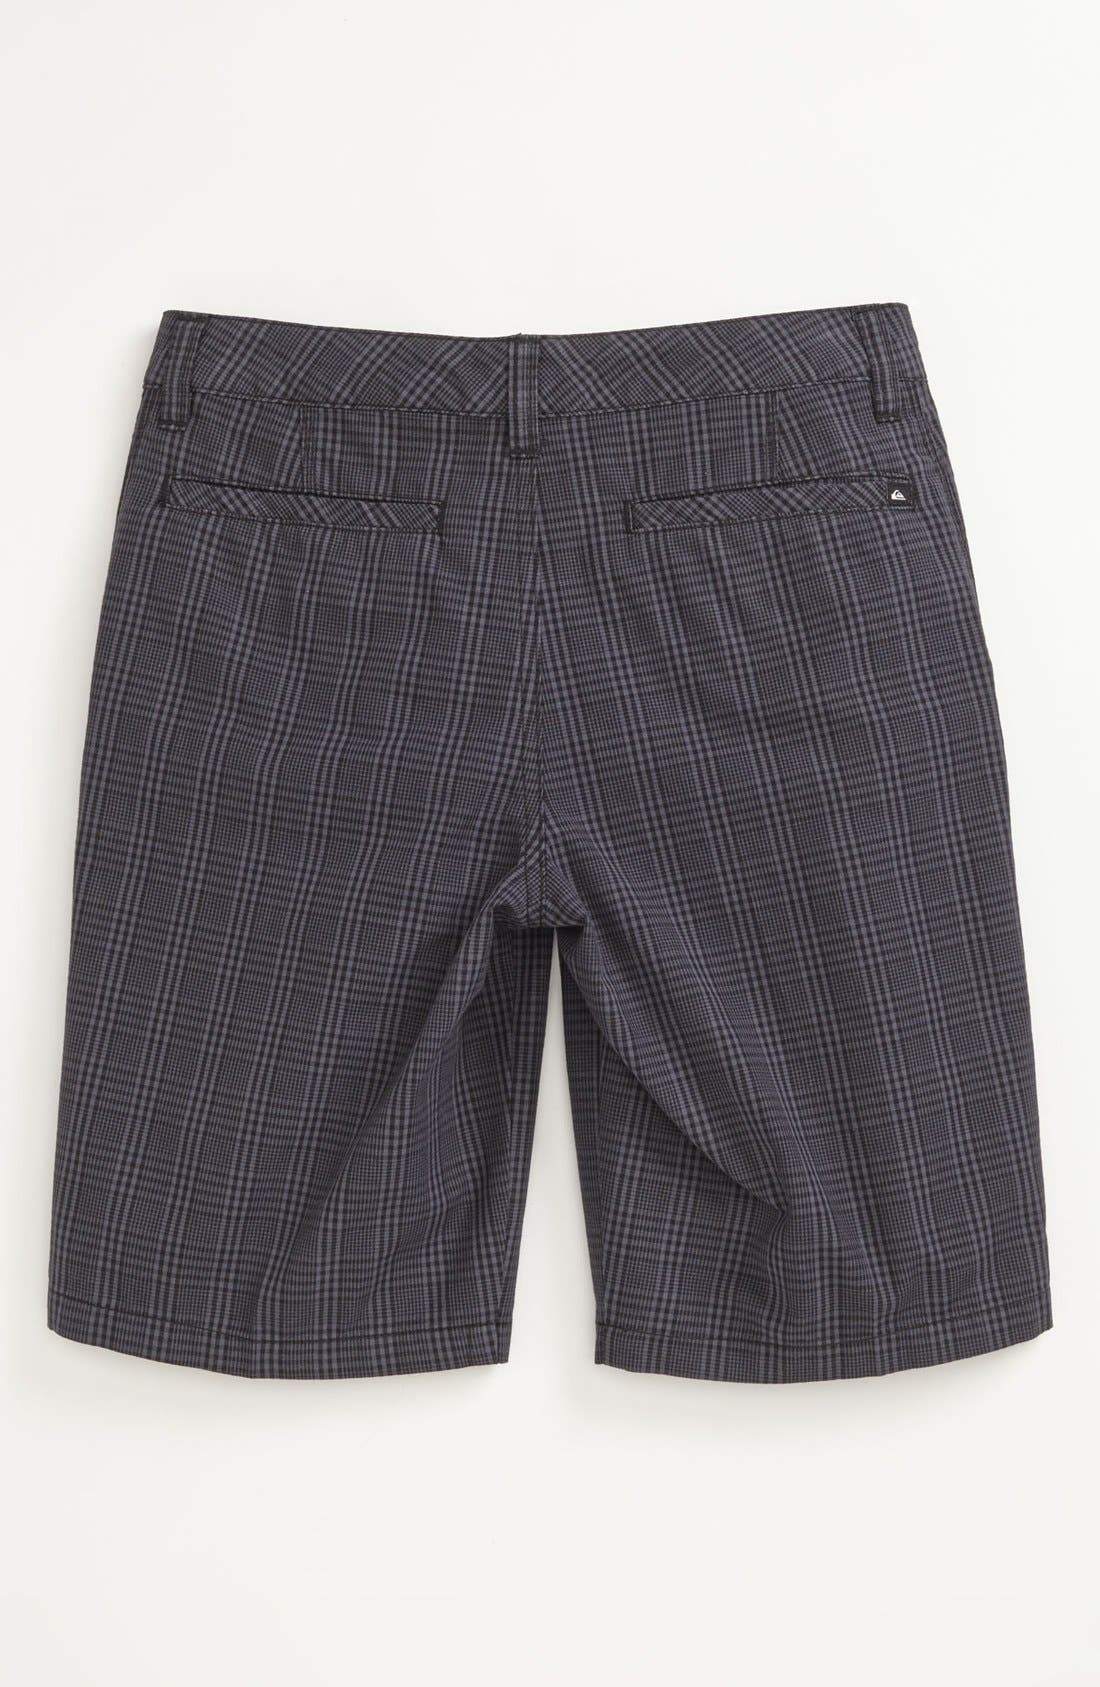 Alternate Image 2  - Quiksilver 'Agenda Suiting' Plaid Shorts (Big Boys)